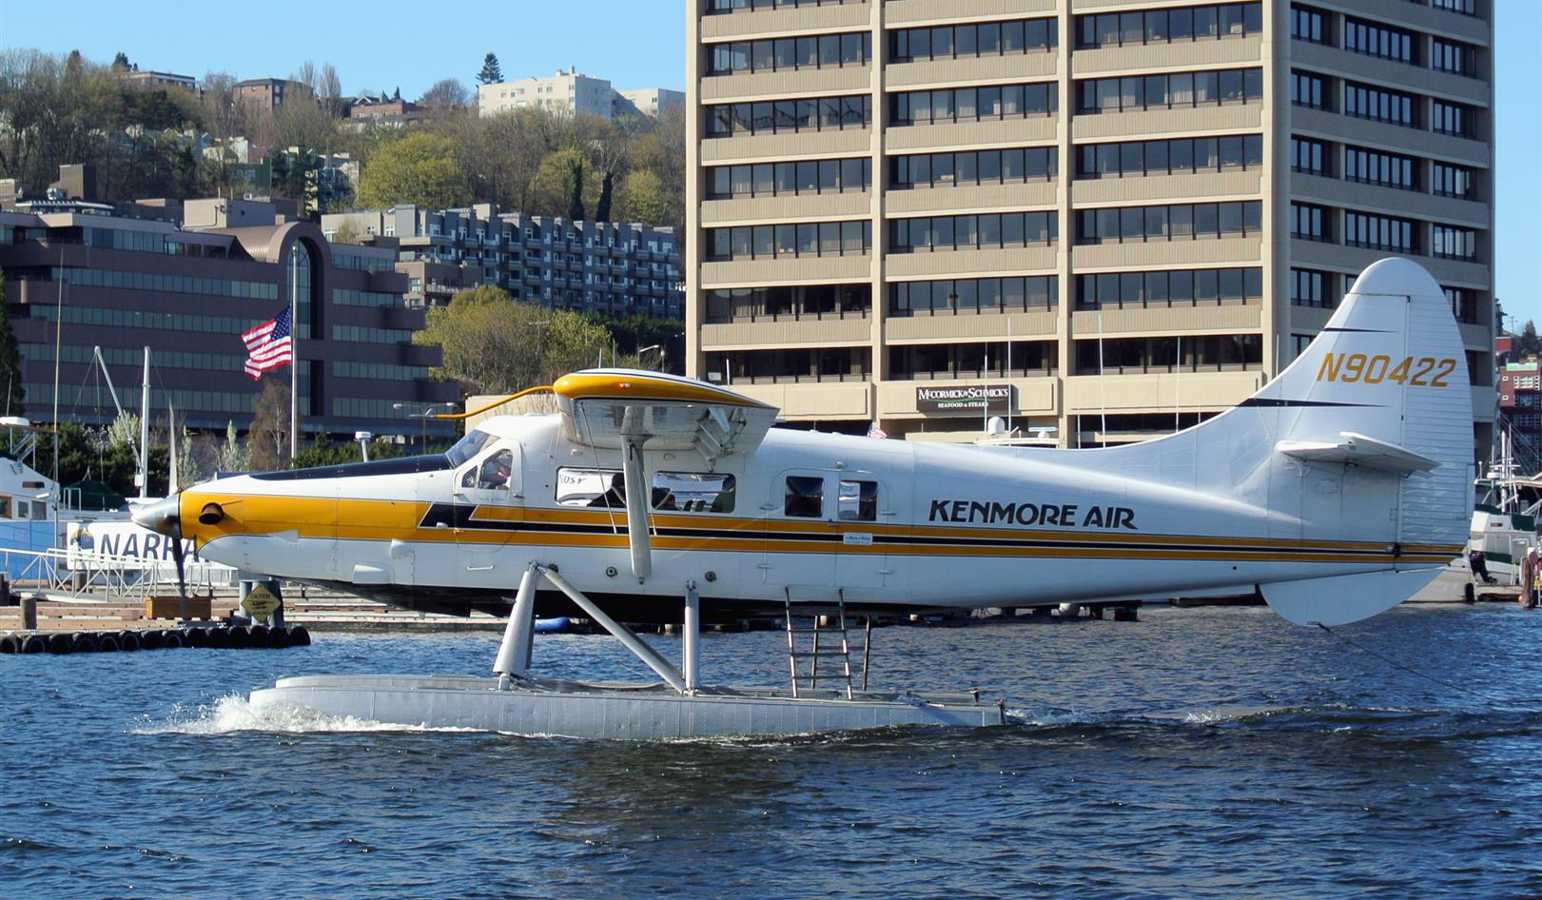 Kenmore Air seaplane taxiing in the harbor.